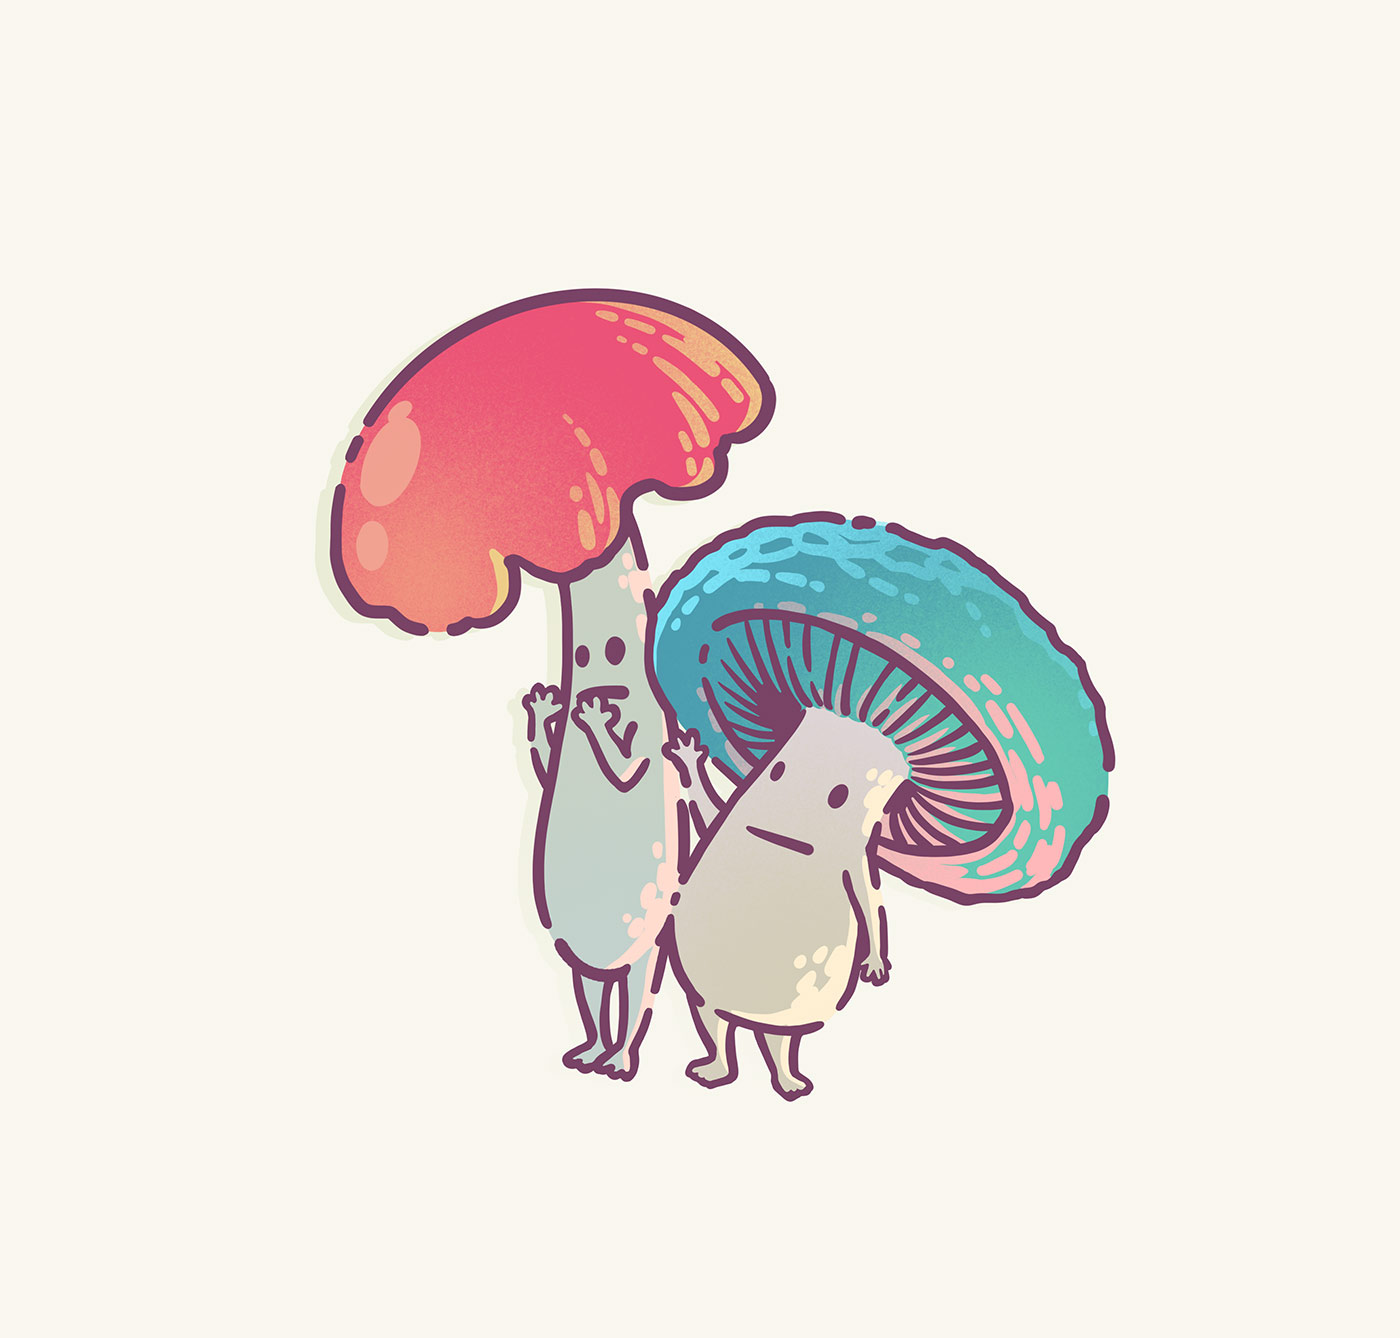 Illustration icons by Brittany Norris monster fungi mushroom creatures